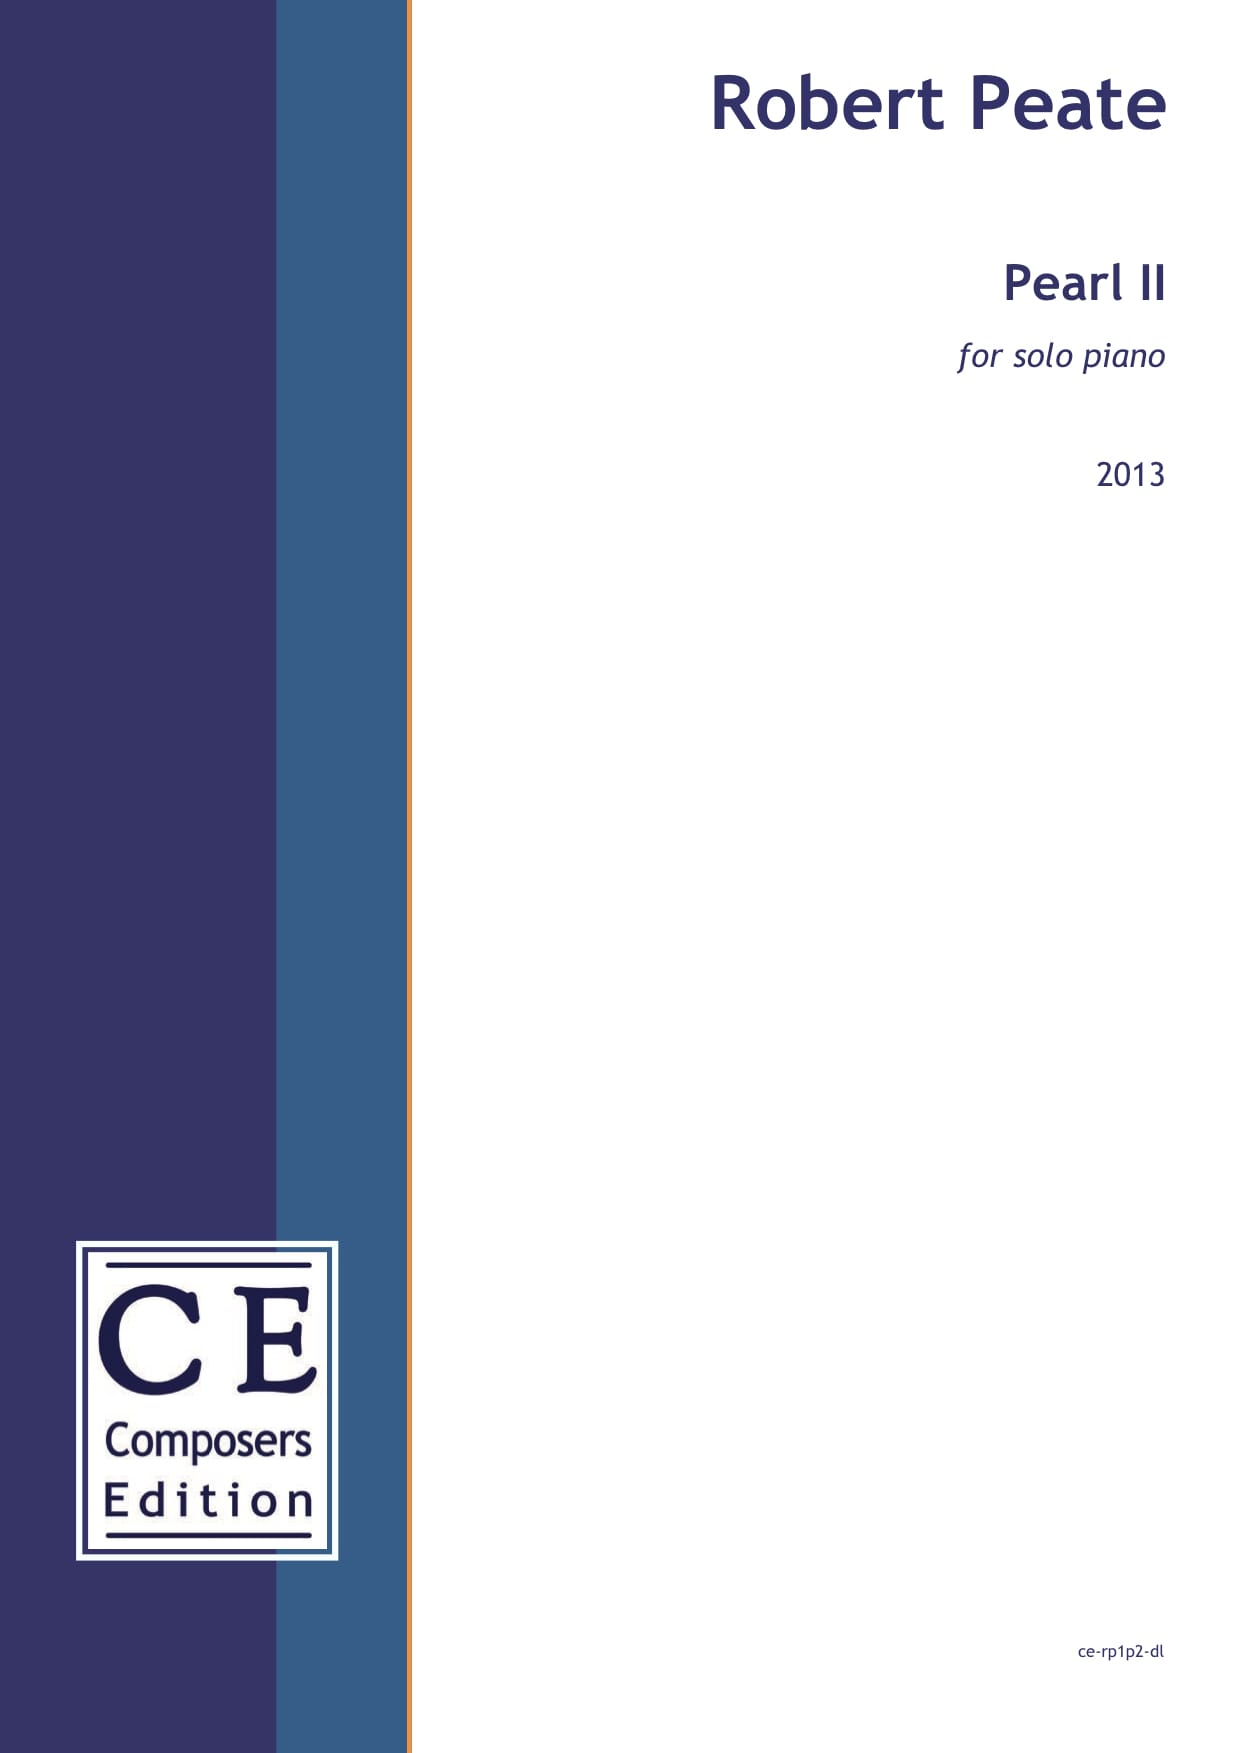 Robert Peate: Pearl II for solo piano